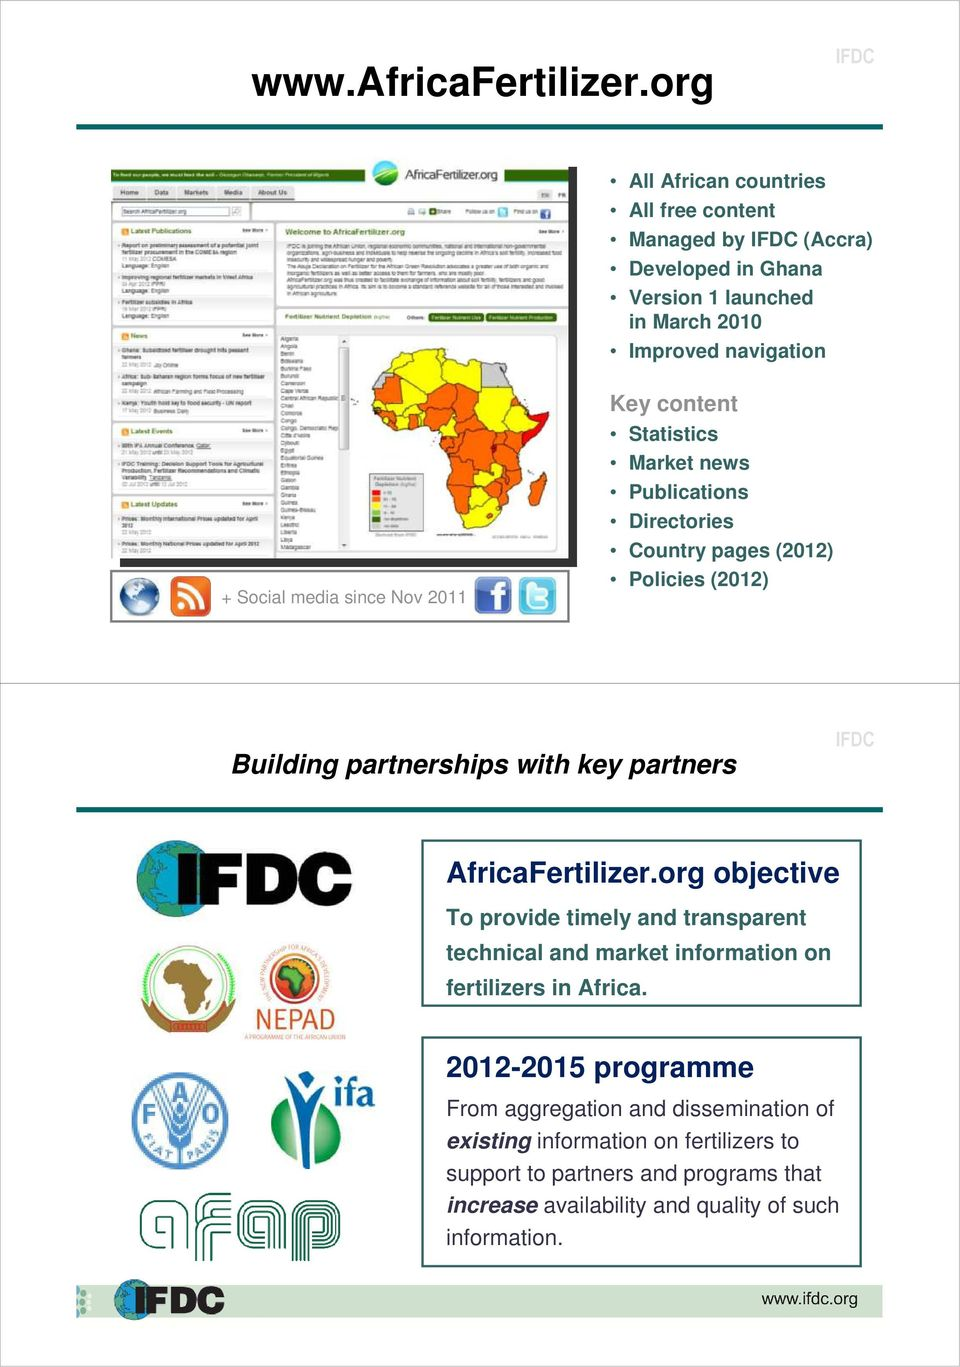 2011 Key content Statistics Market news Publications Directories Country pages (2012) Policies (2012) Building partnerships with key partners AfricaFertilizer.